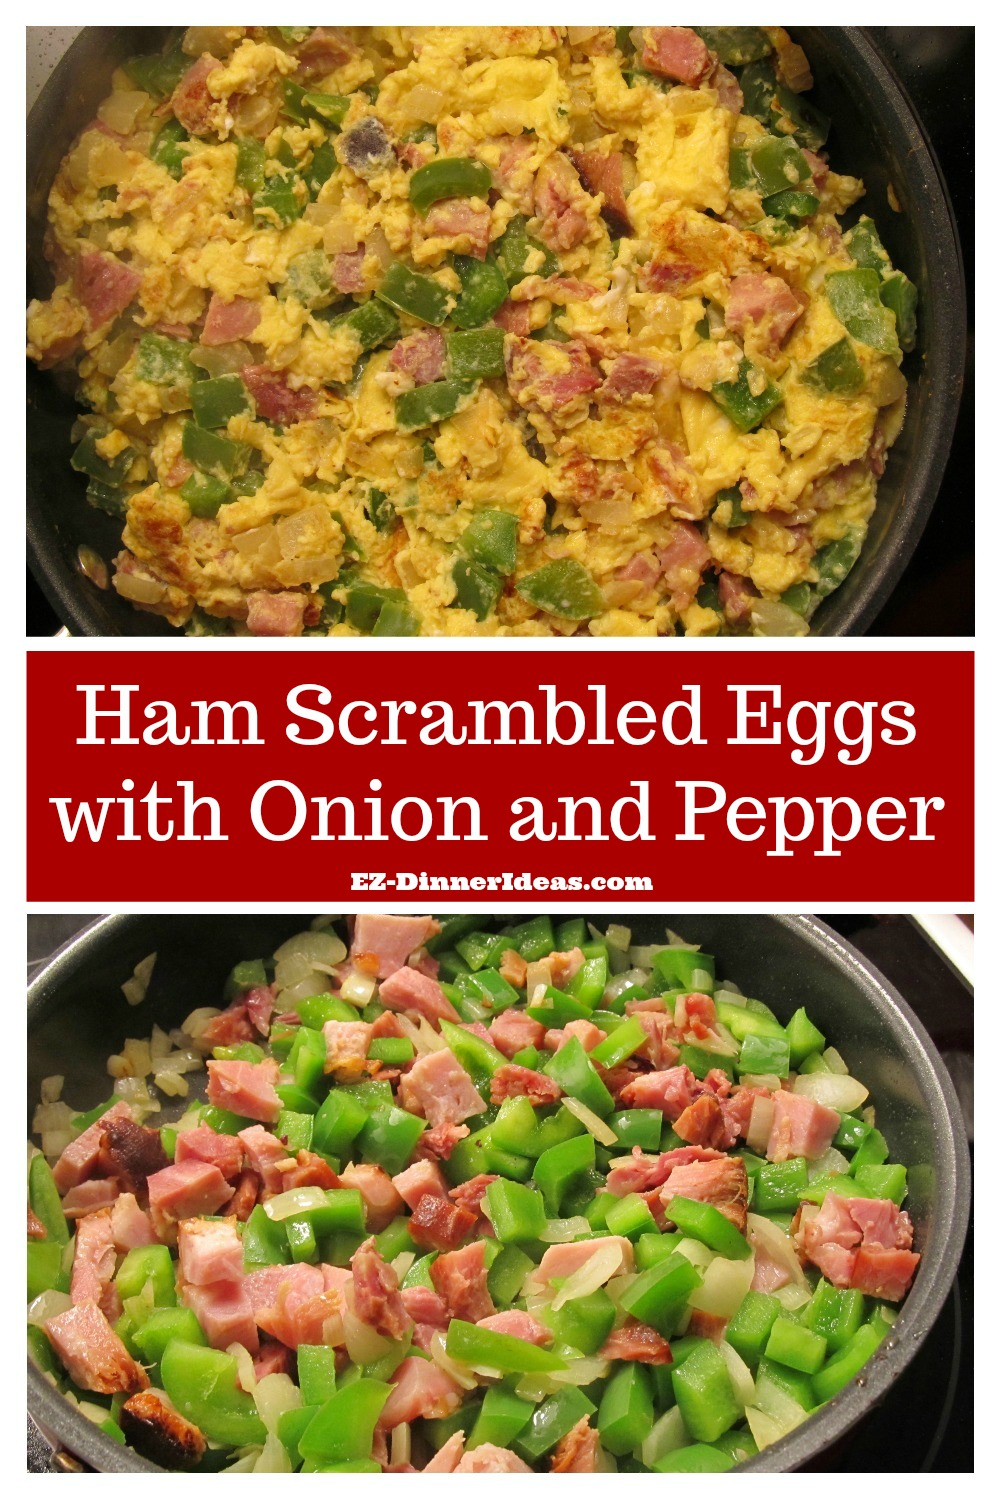 Ham Scrambled Eggs with Onion and Pepper - Breakfast idea egg is a quick recipe for meal.  It is great for using any ham leftover.  It is also a super simple and delicious idea for any meal.